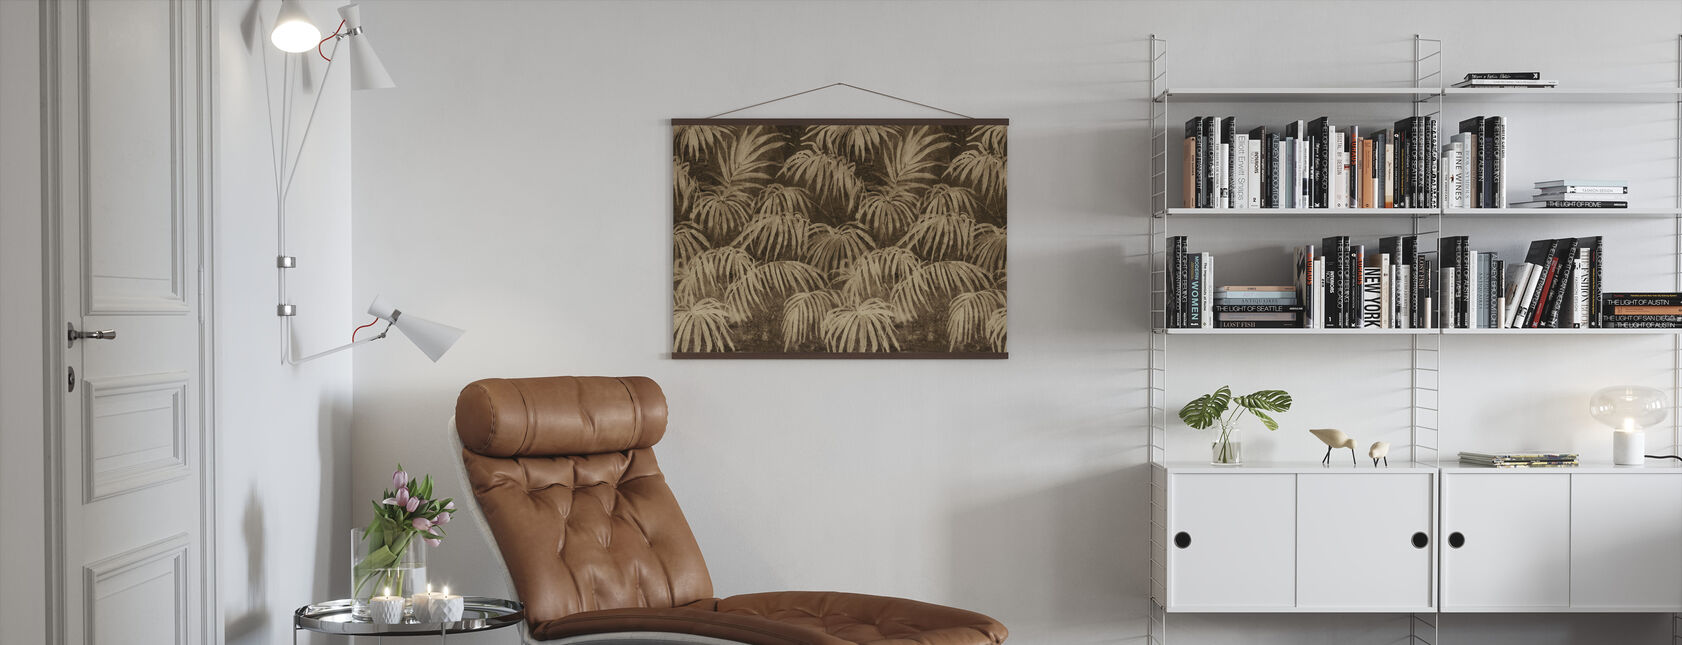 Bohemian Bamboo - Poster - Living Room